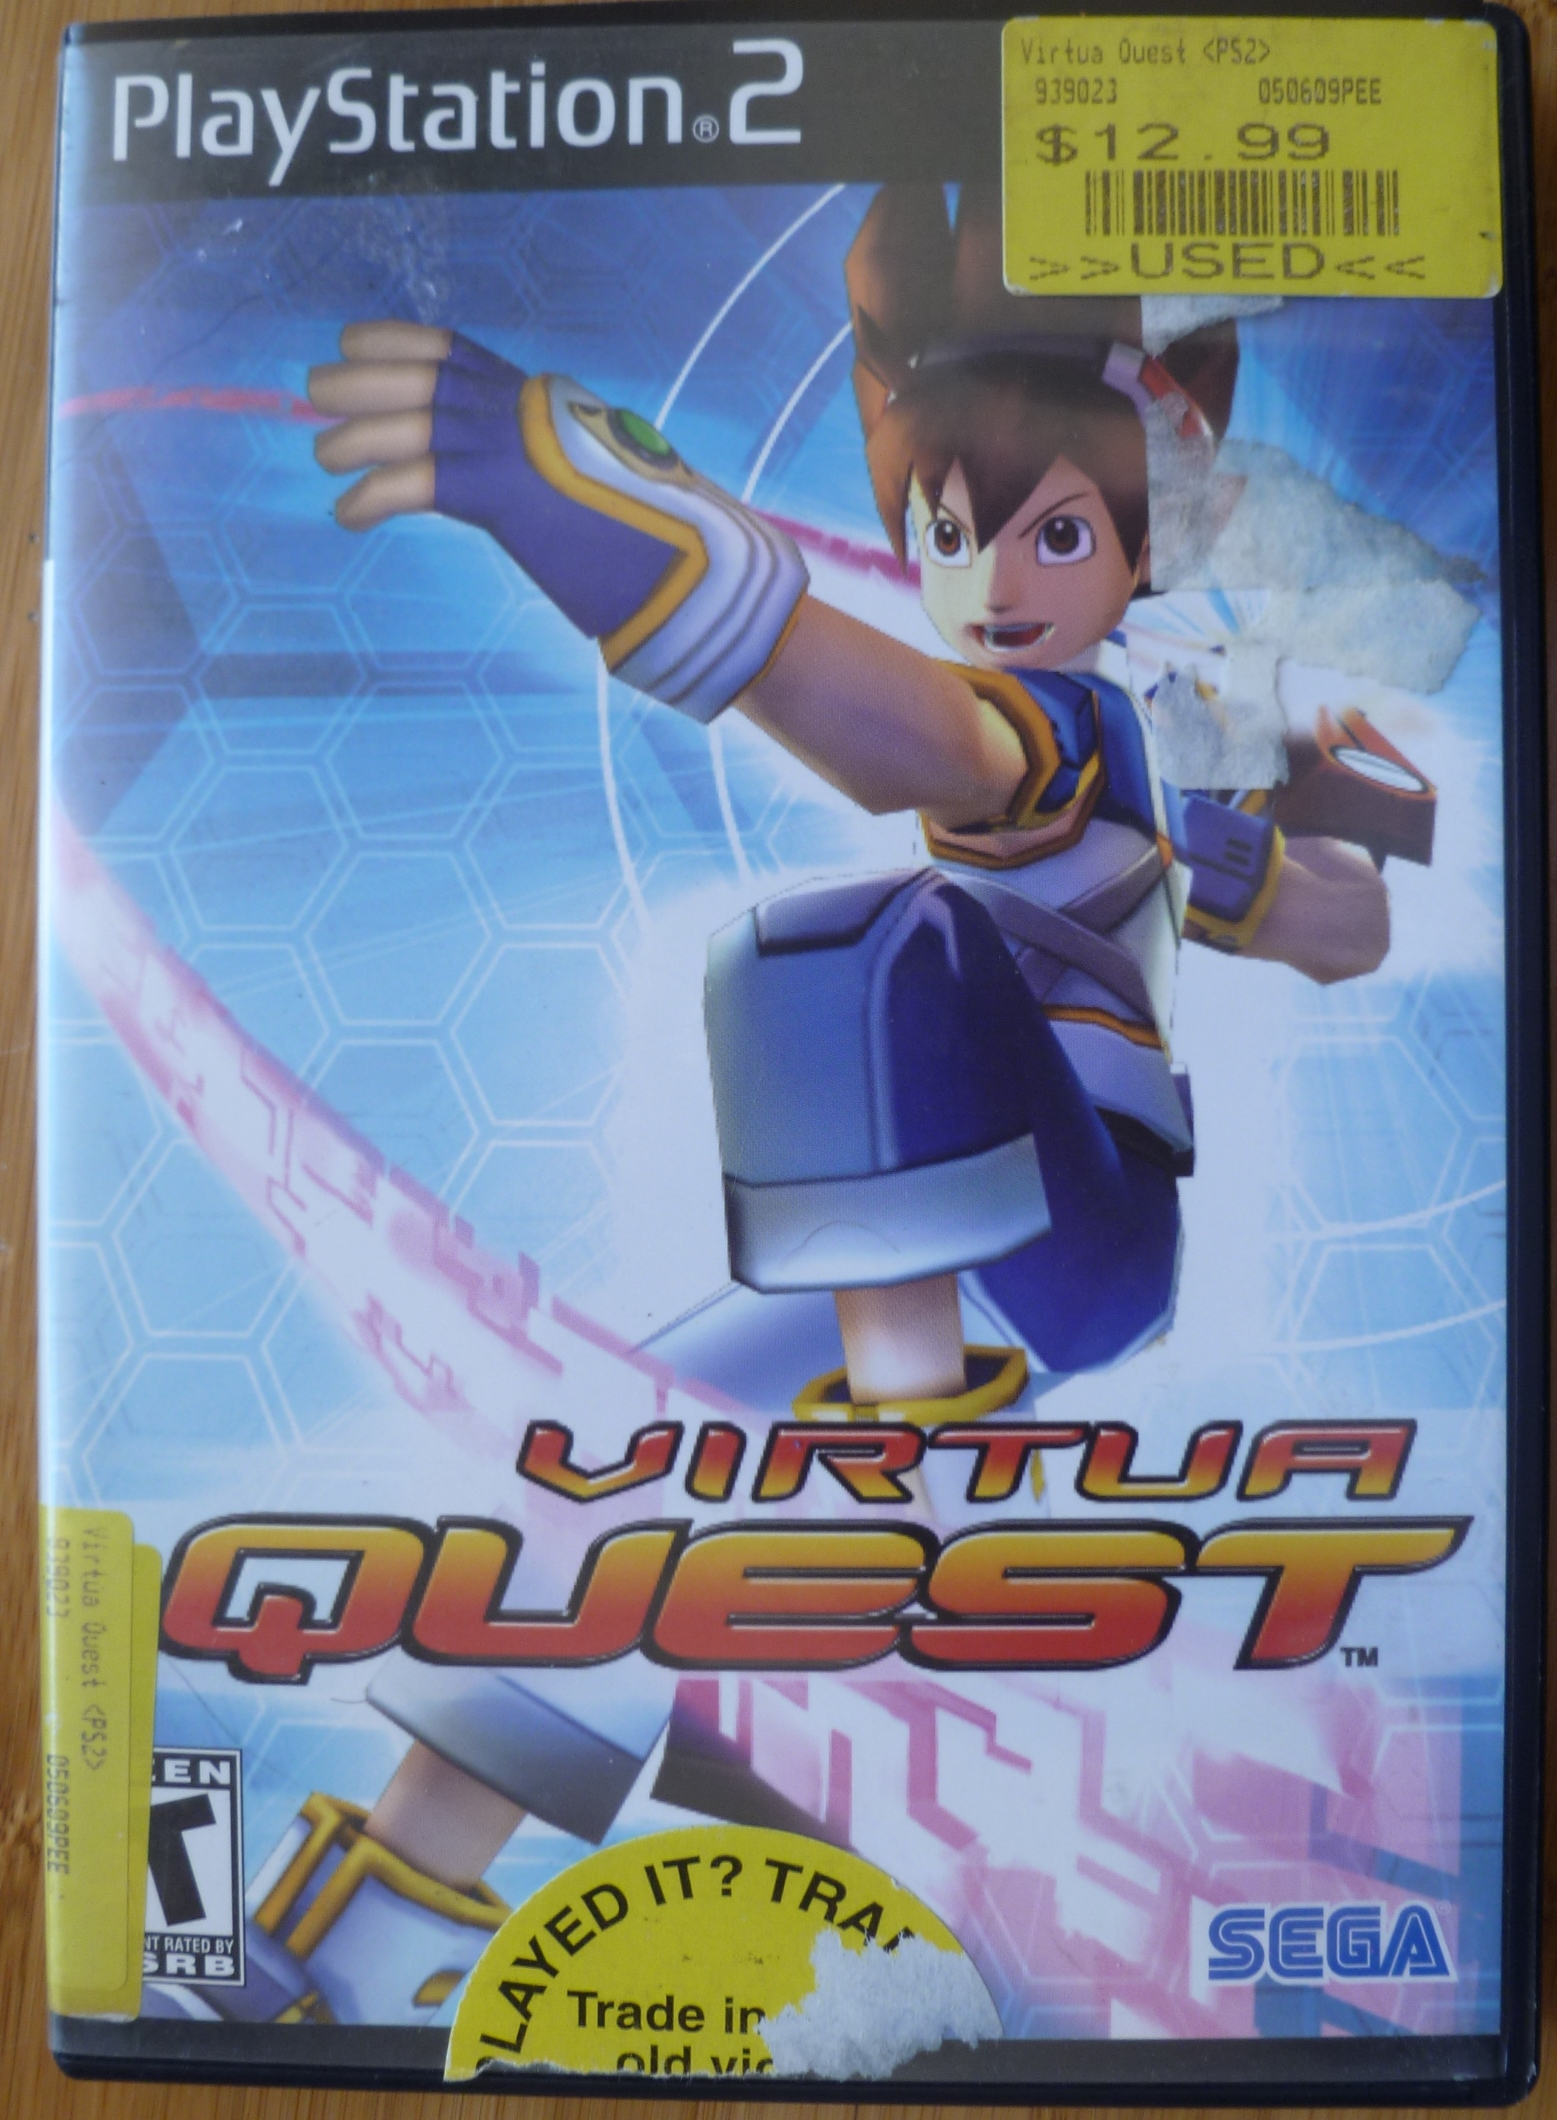 Virtua Quest Cover